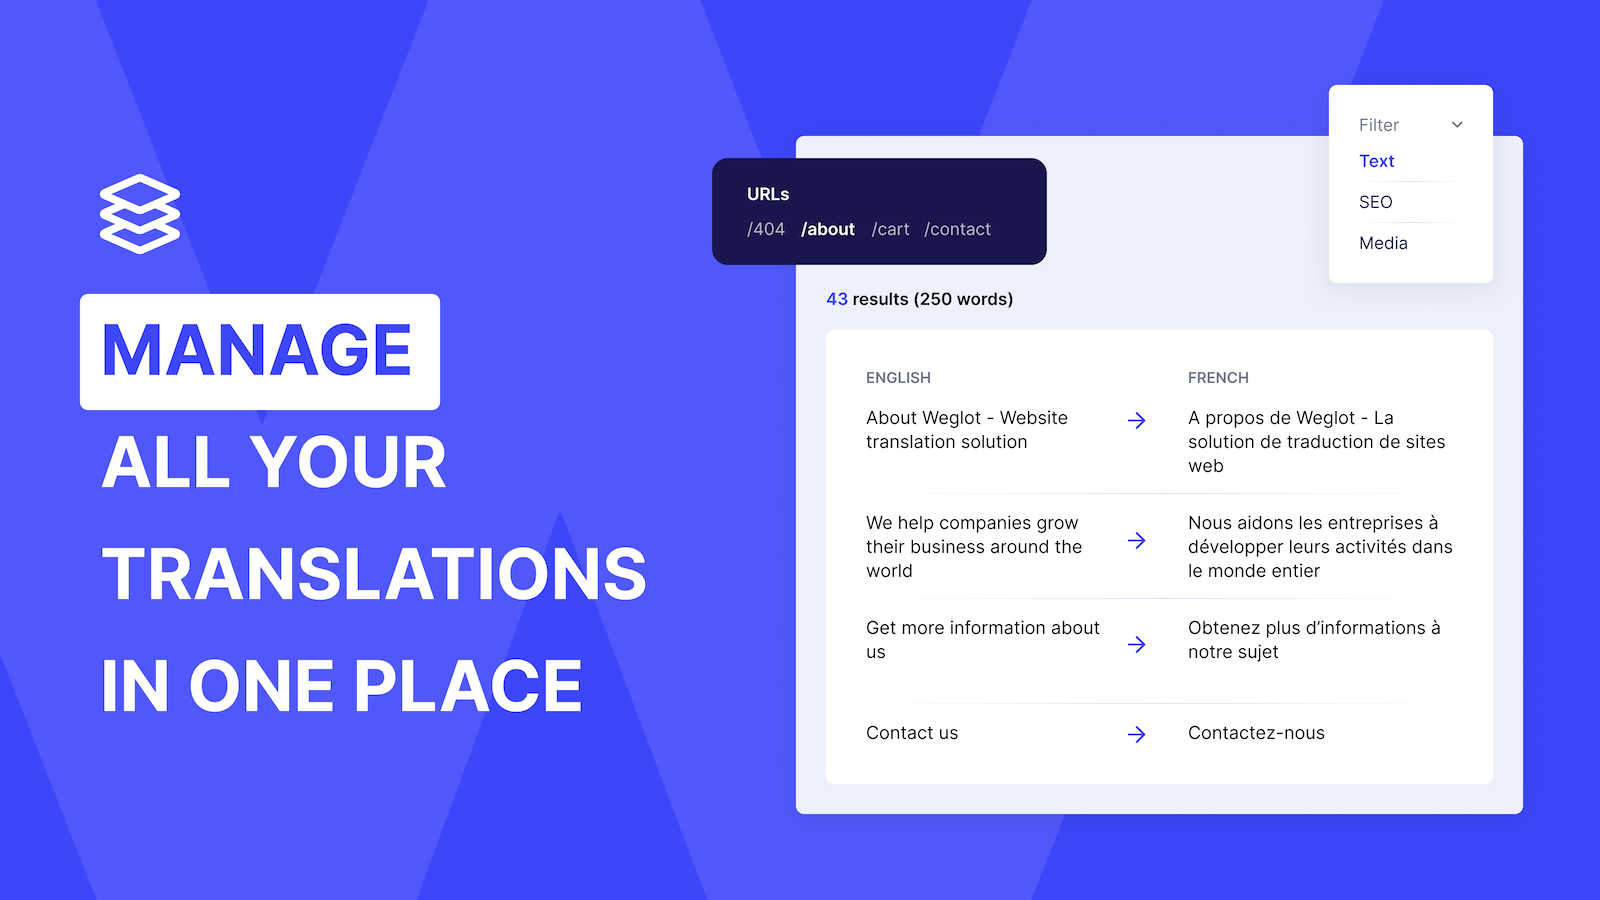 Manage all your translations in one place